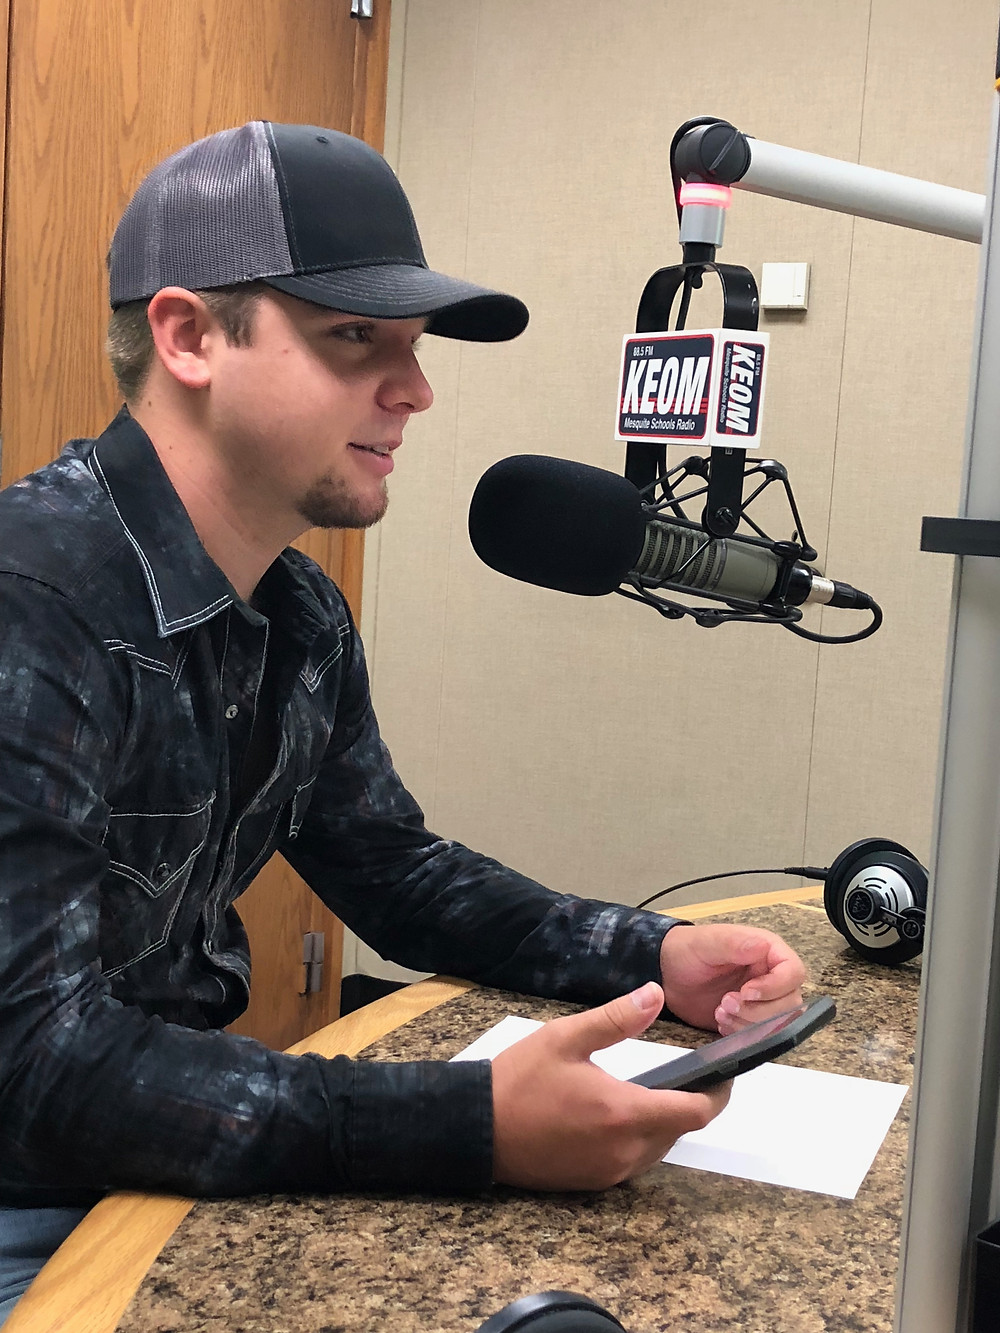 Taylor Lewis on KEOM Texas FM